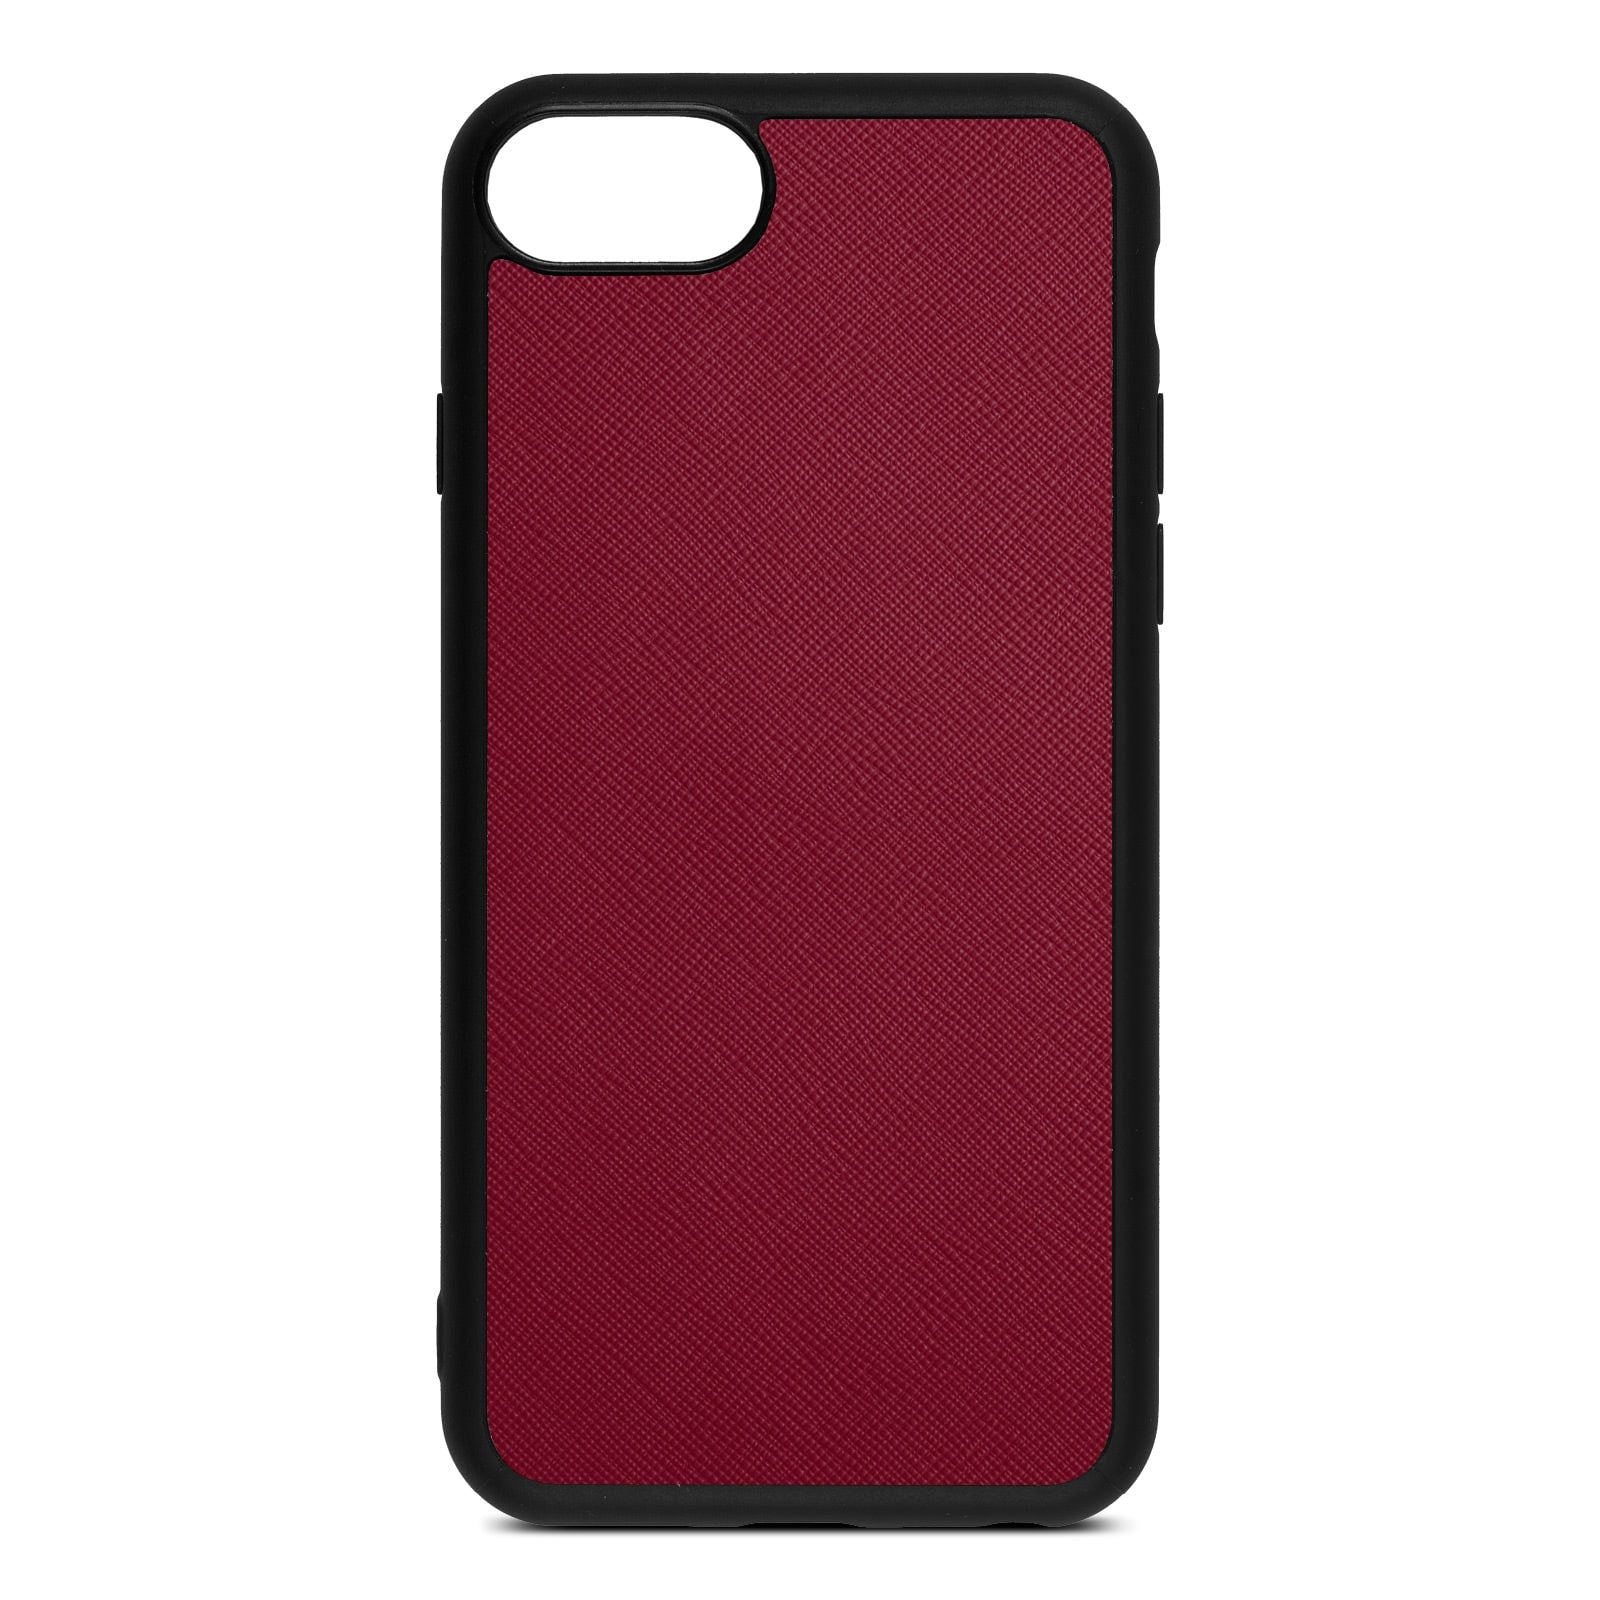 Blank Personalised Dark Red Saffiano Leather iPhone 8 Case